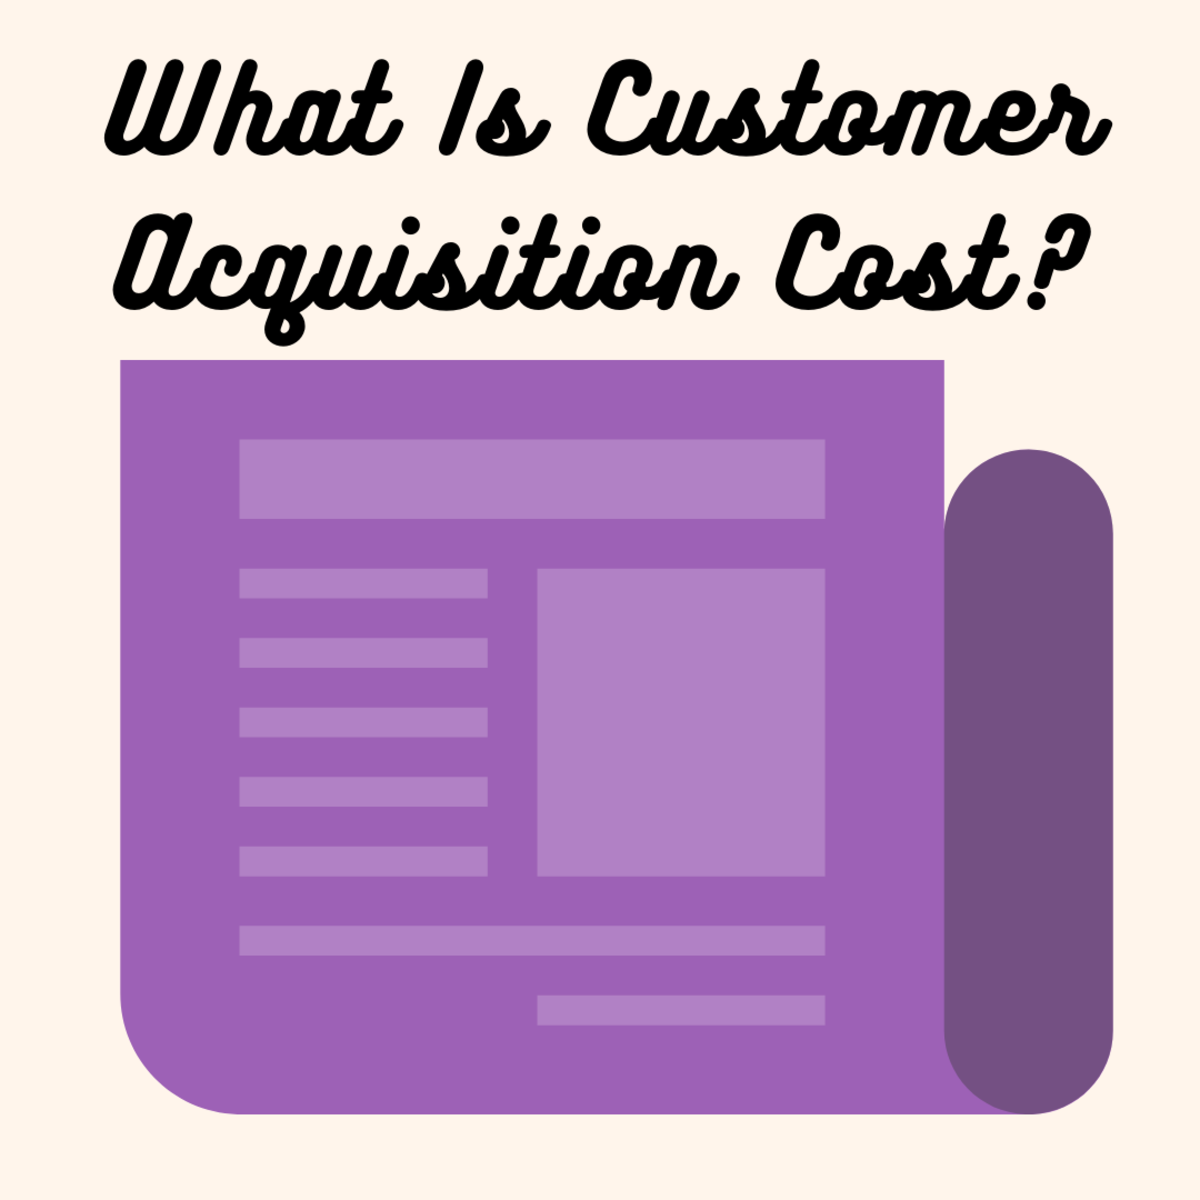 Learn about acquisition cost and become better at calculating costs for your small business.